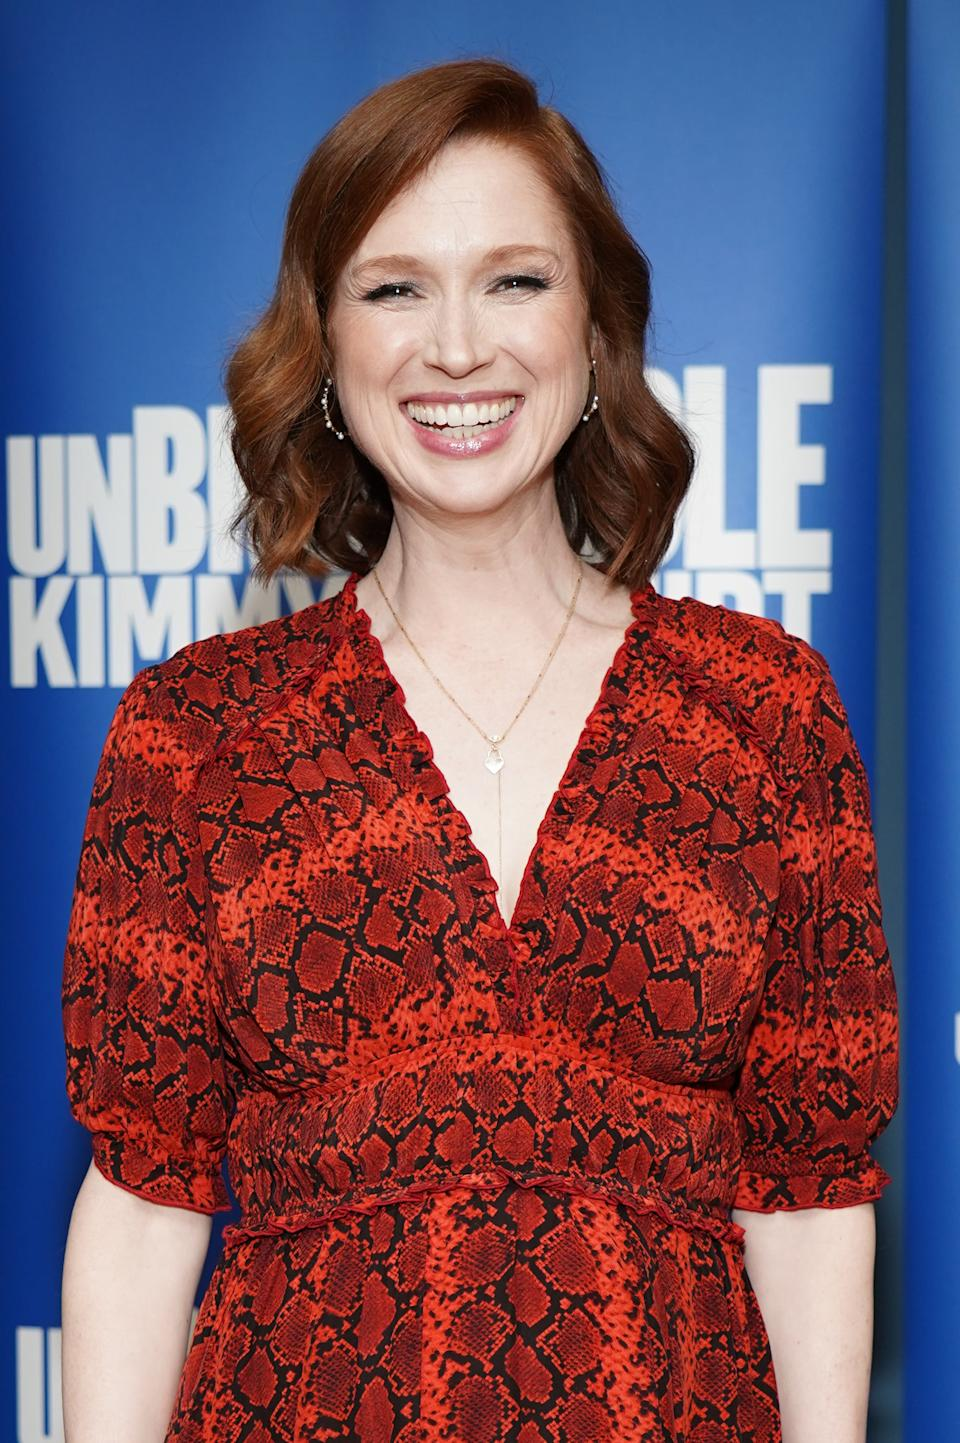 LOS ANGELES, CALIFORNIA - MAY 29: Ellie Kemper attends Universal Television's FYC